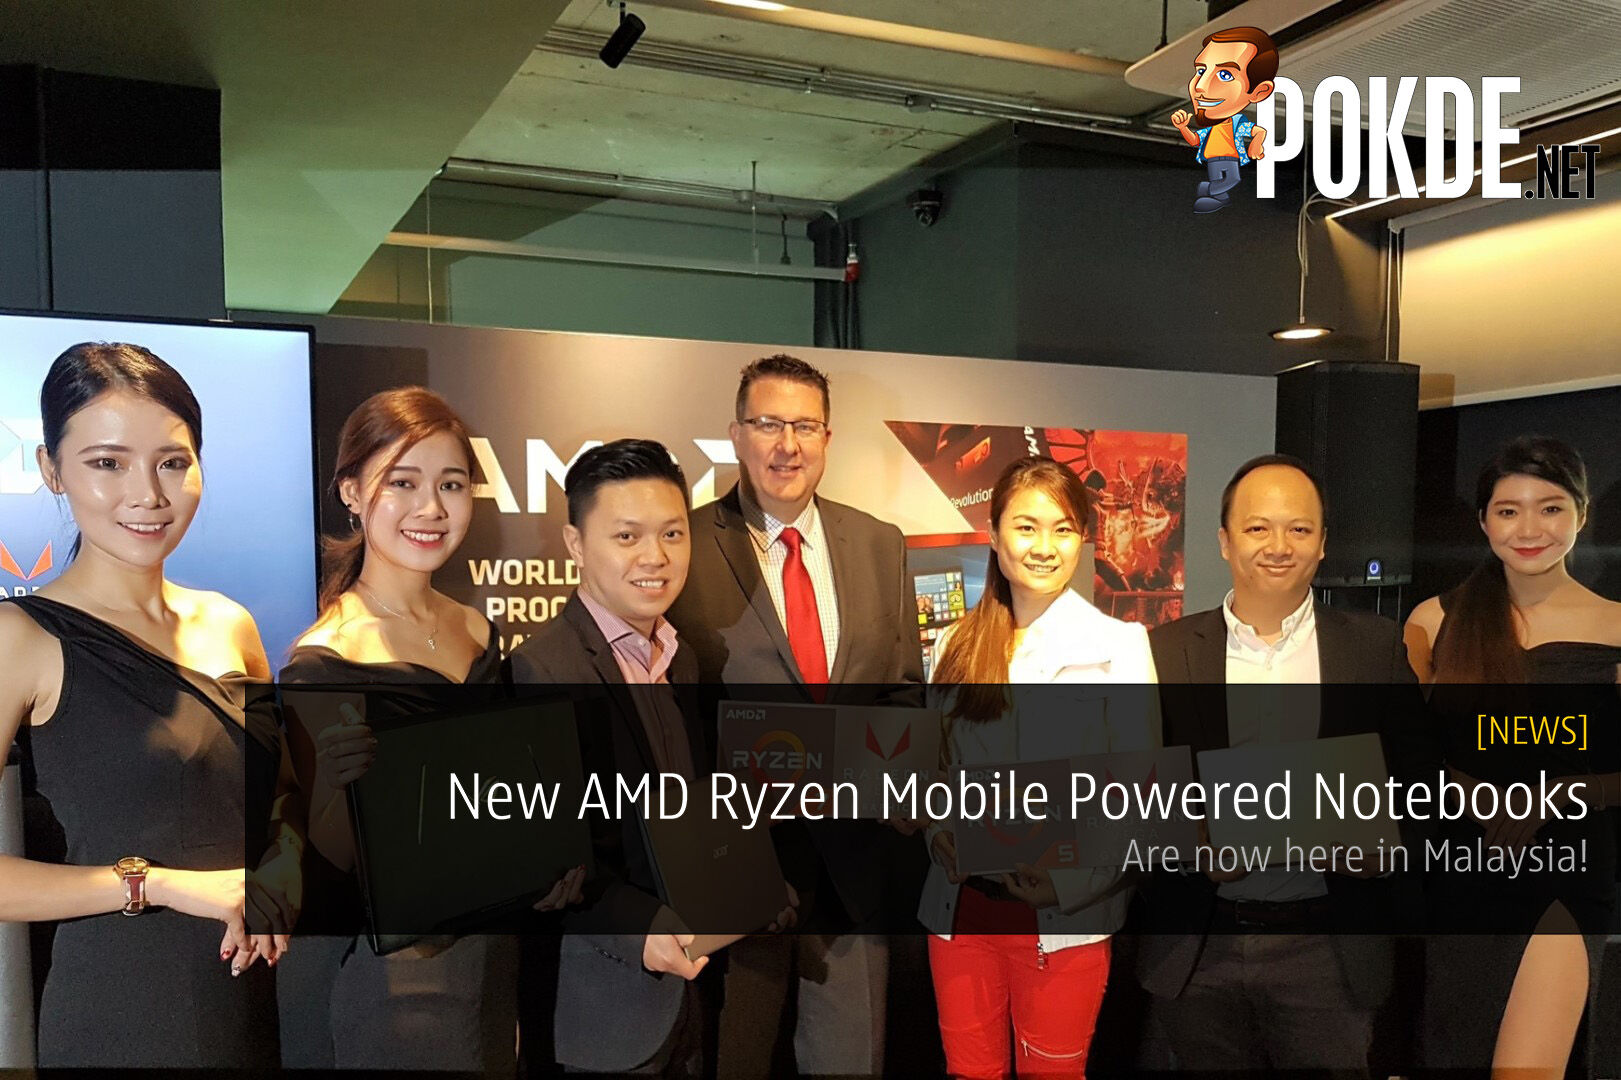 New AMD Ryzen Mobile Powered Notebooks Are Now Here in Malaysia! 29